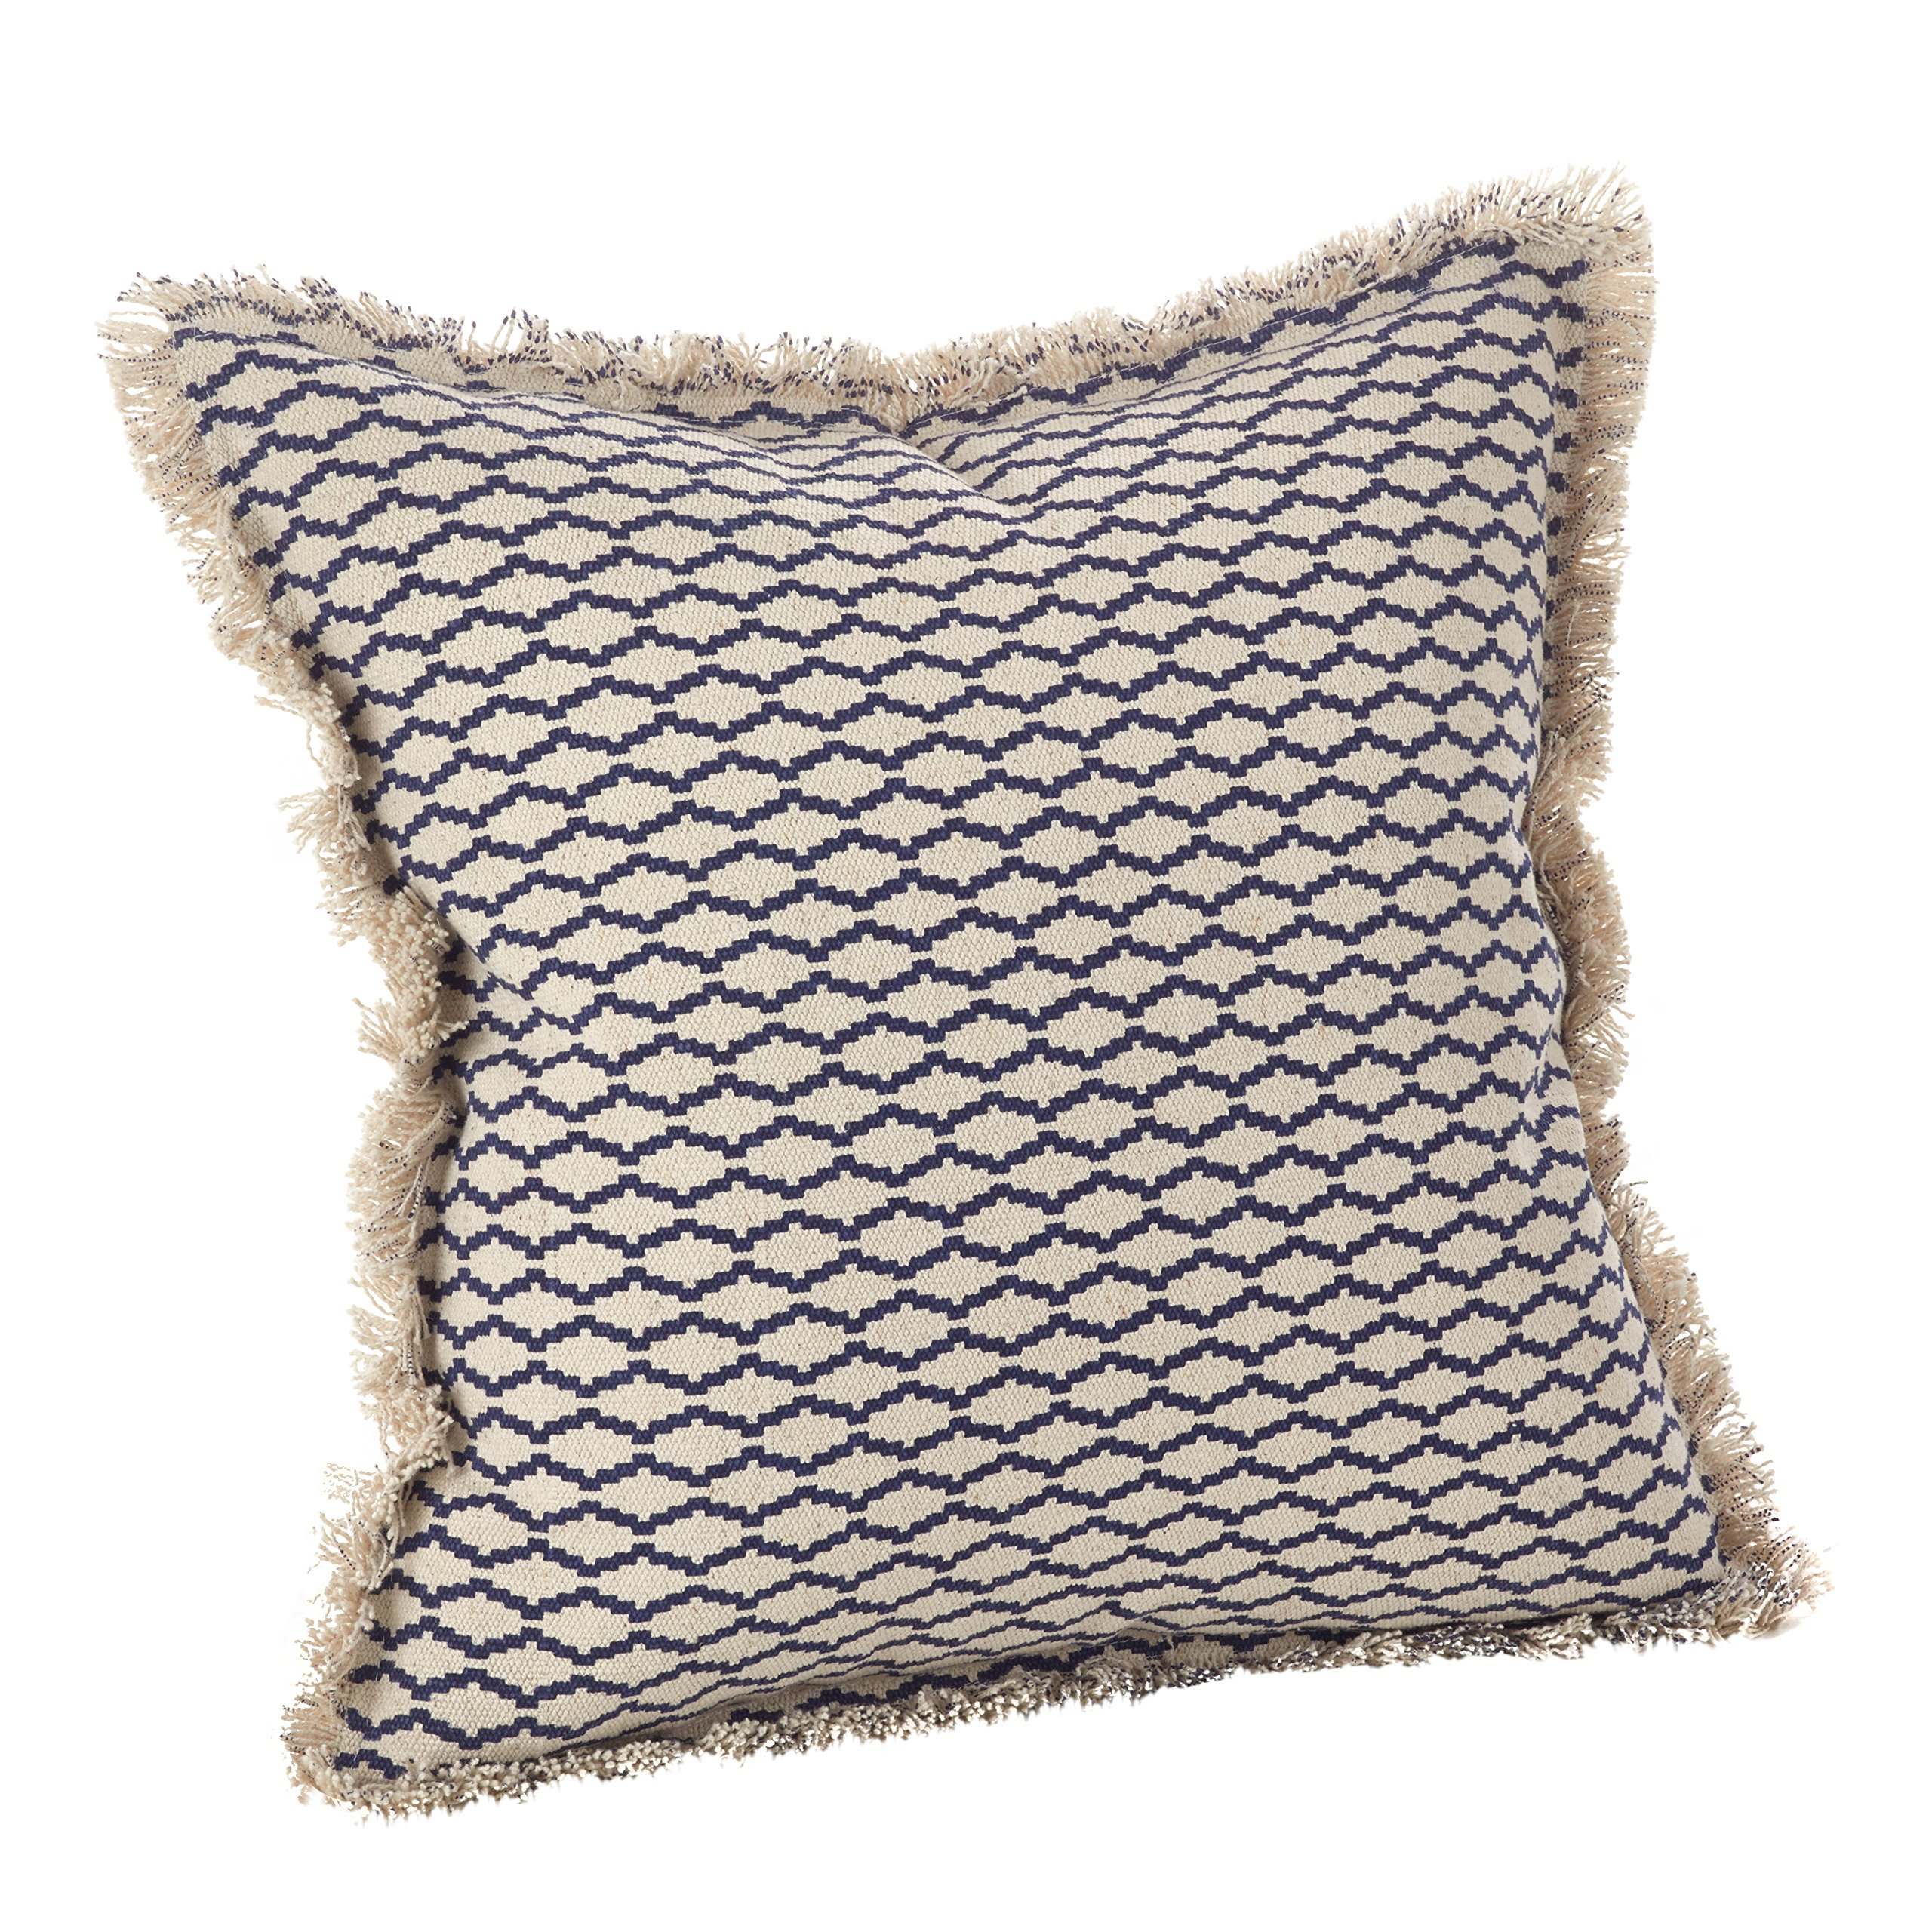 SARO LIFESTYLE Canberra Collection Fringed Morrocan Down Filled Cotton Throw Pillow, 20'', Navy Blue